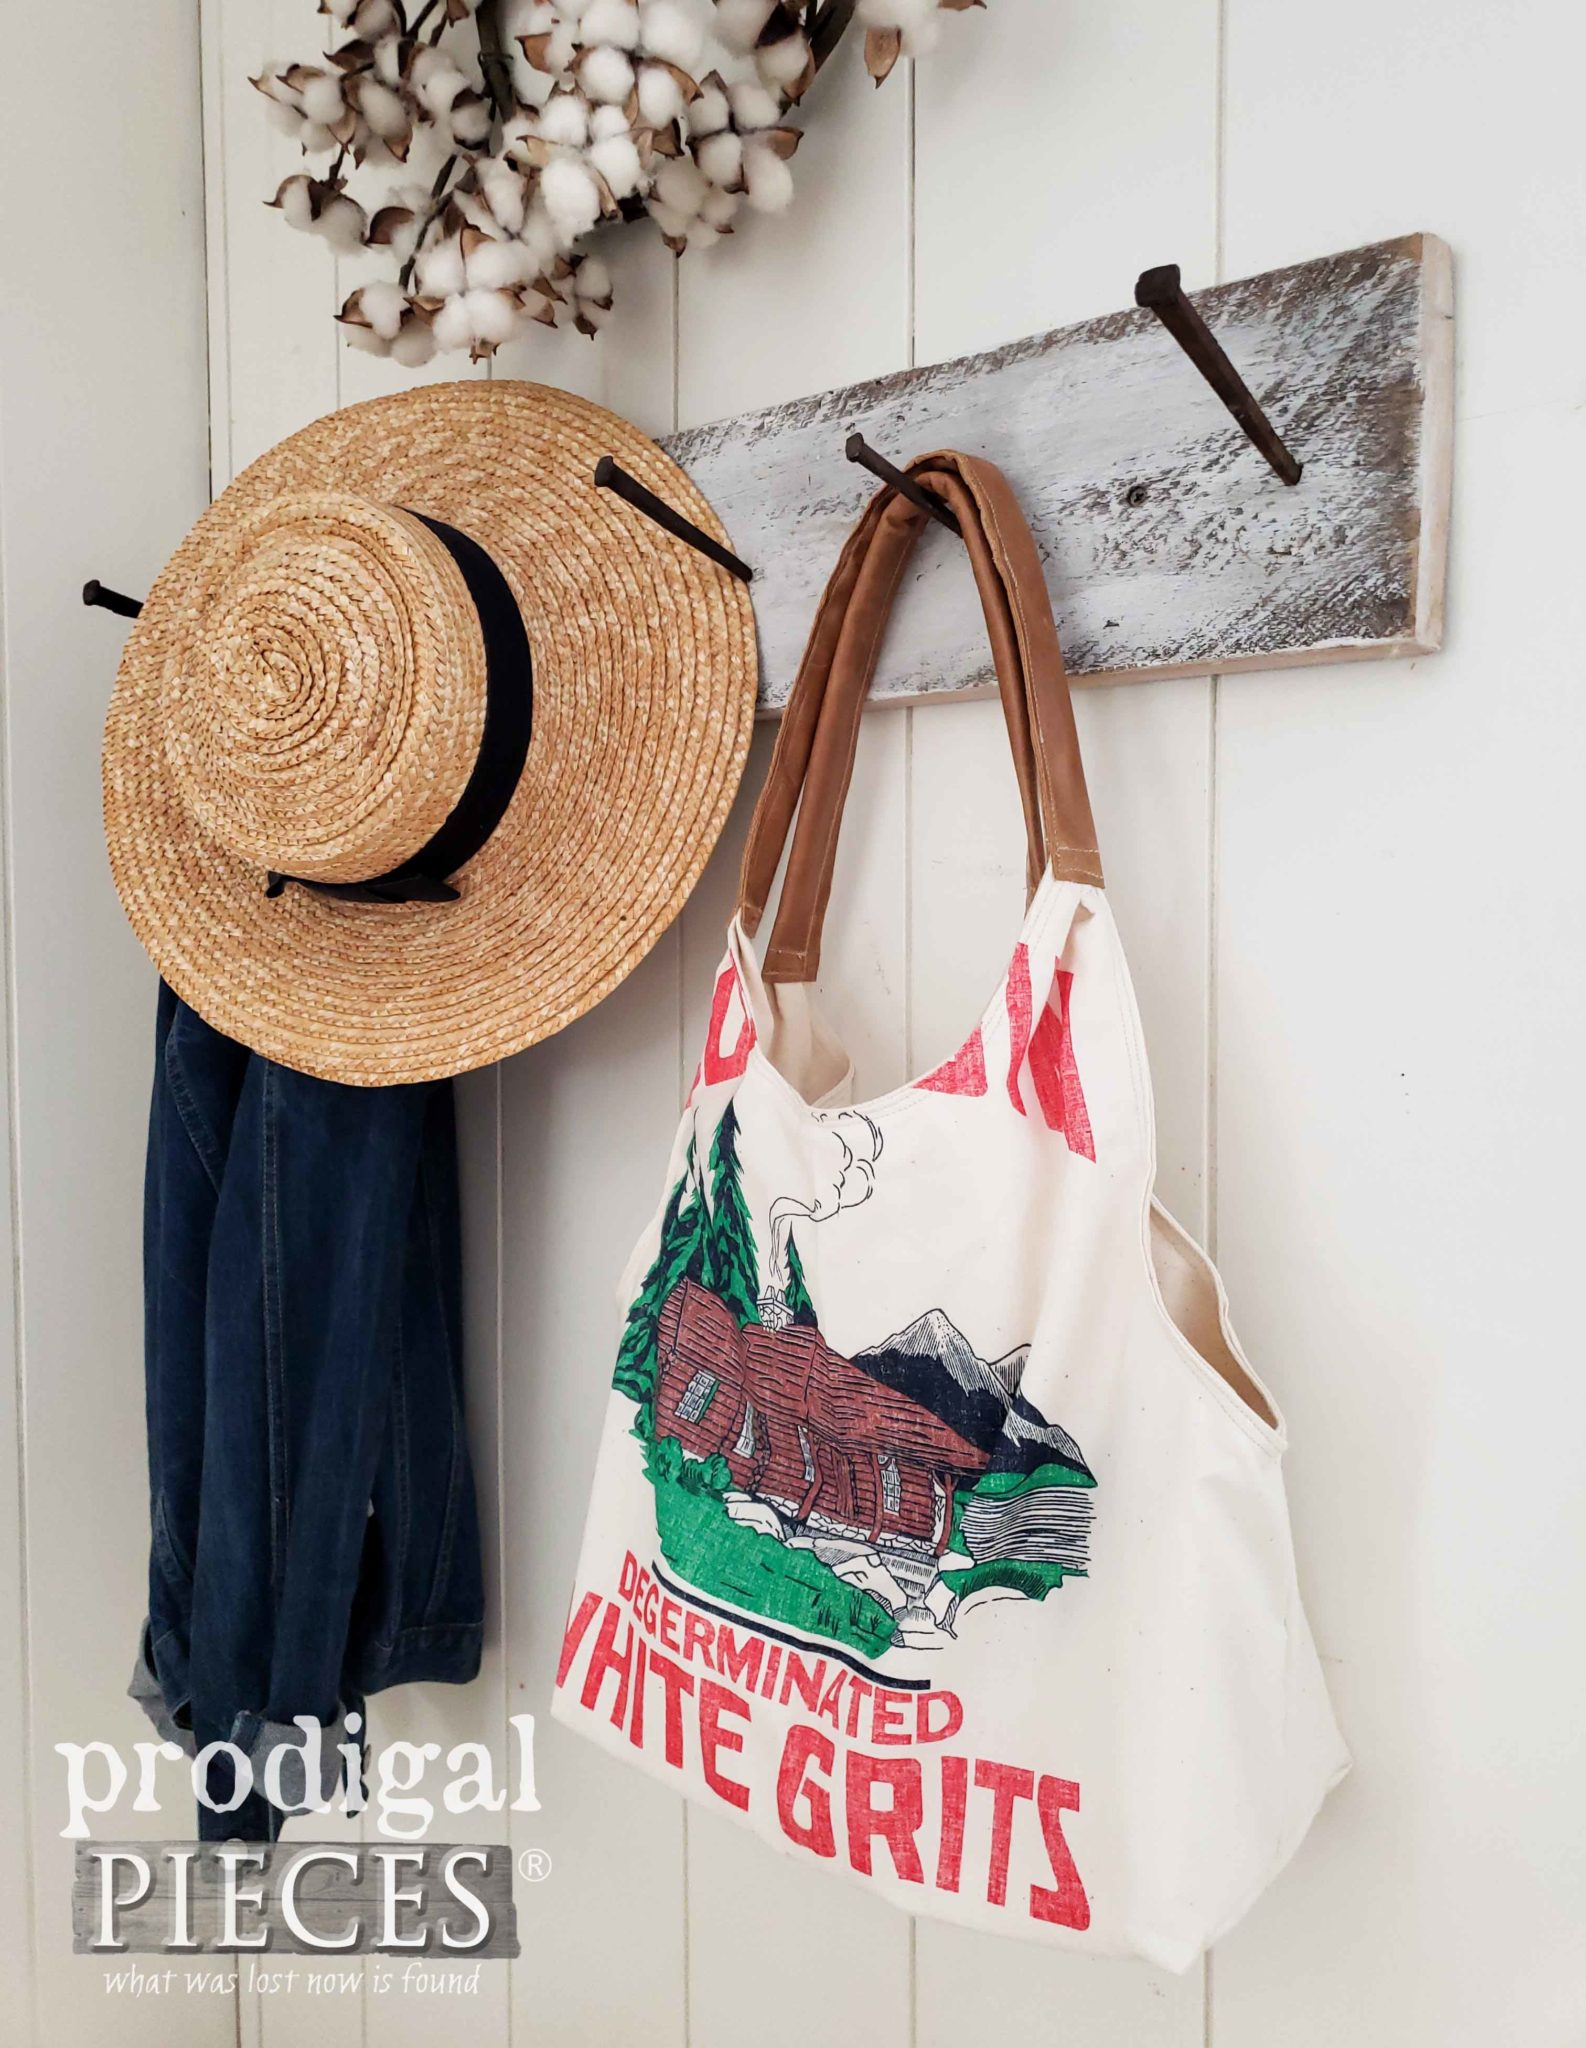 Handmade Farmhouse Style Feed Sack Tote Bag with Leather Handles by Larissa of Prodigal Pieces | prodigalpieces.com #prodigalpieces #handmade #fashion #style #farmhouse